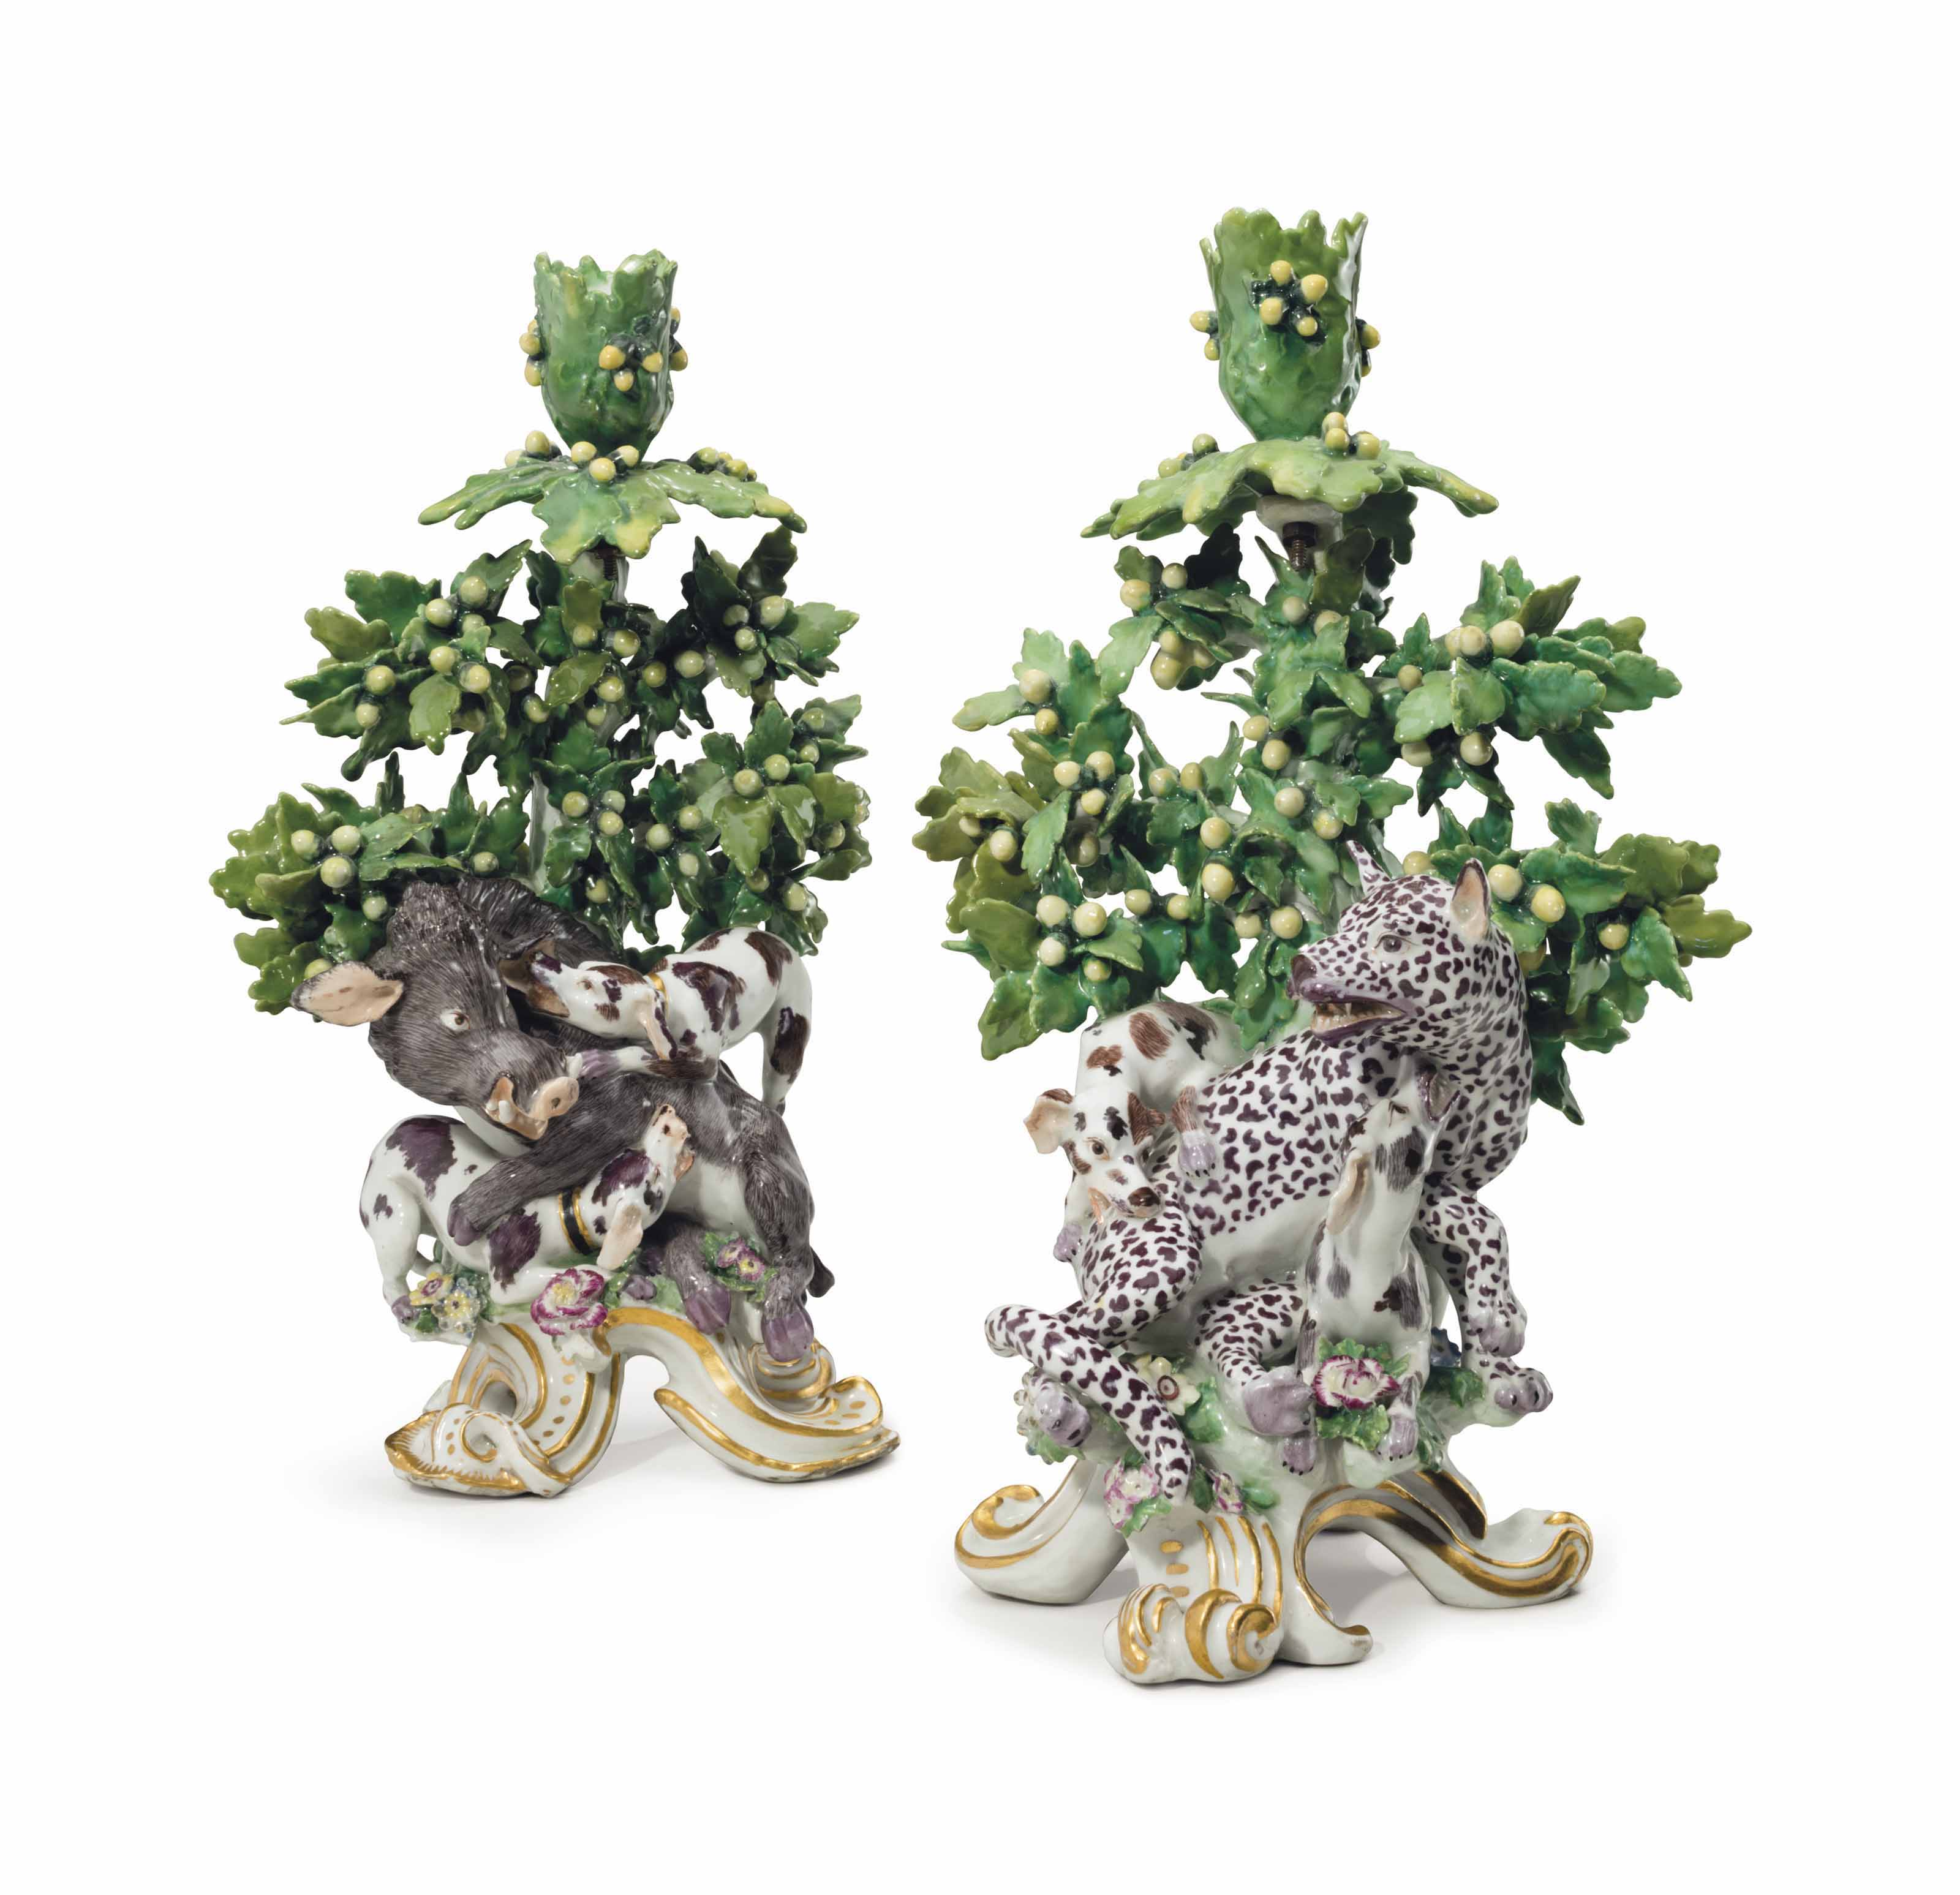 A PAIR OF CHELSEA PORCELAIN 'HUNTING' BOCAGE CANDLESTICKS